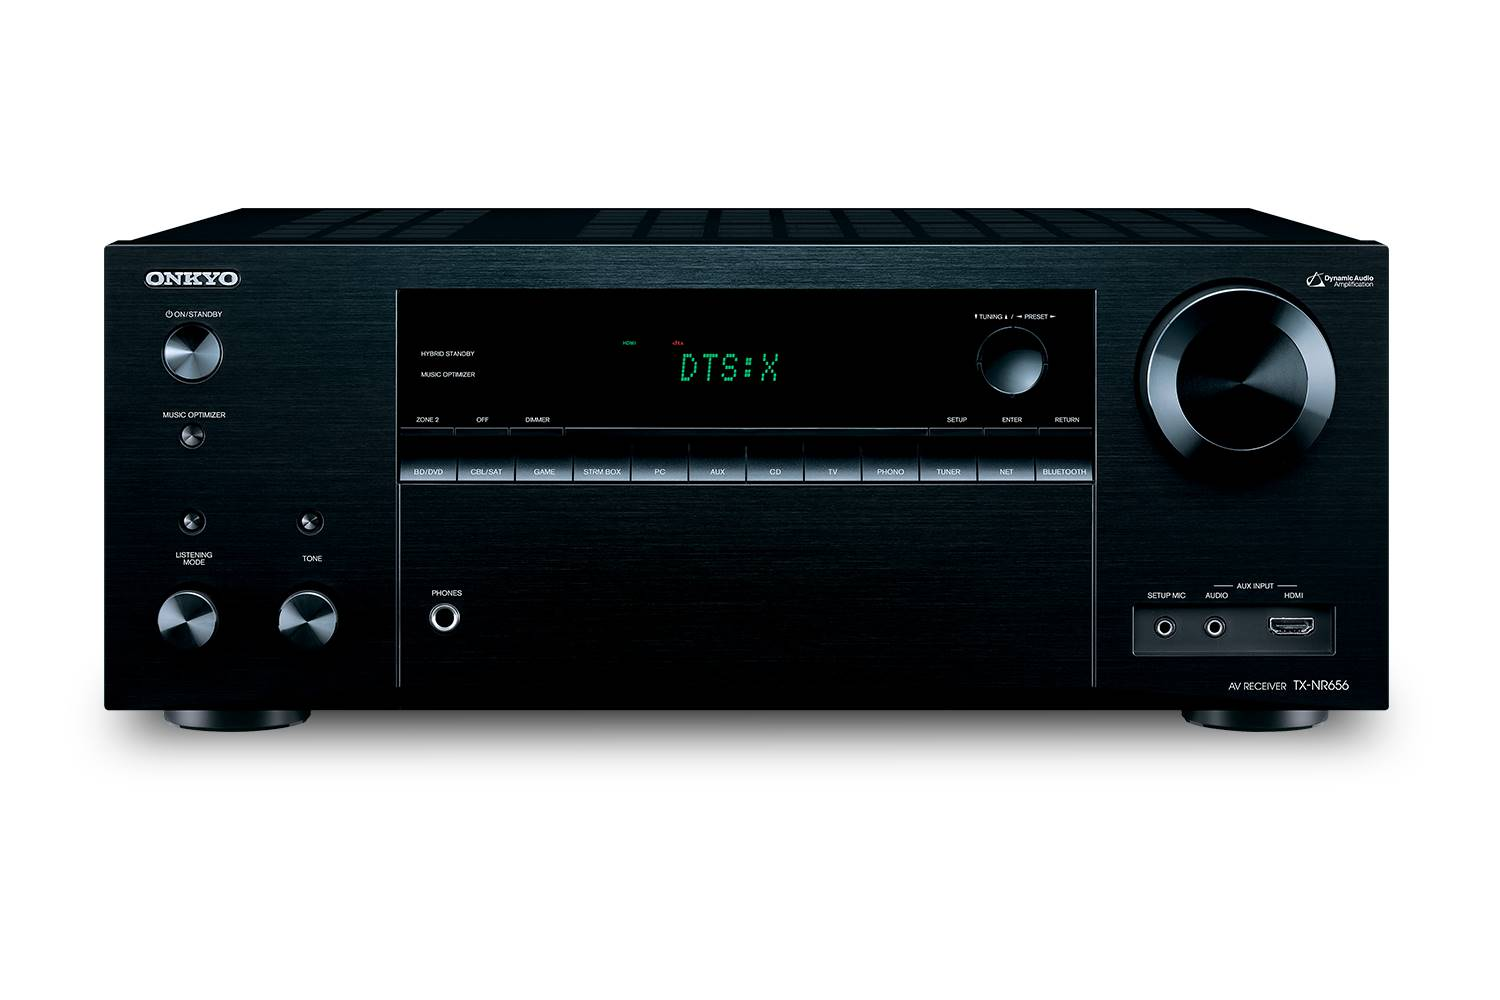 ΡΑΔΙΟΕΝΙΣΧΥΤΗΣ AV ONKYO TX-NR656 black & remote control - LIKE NEW boxed